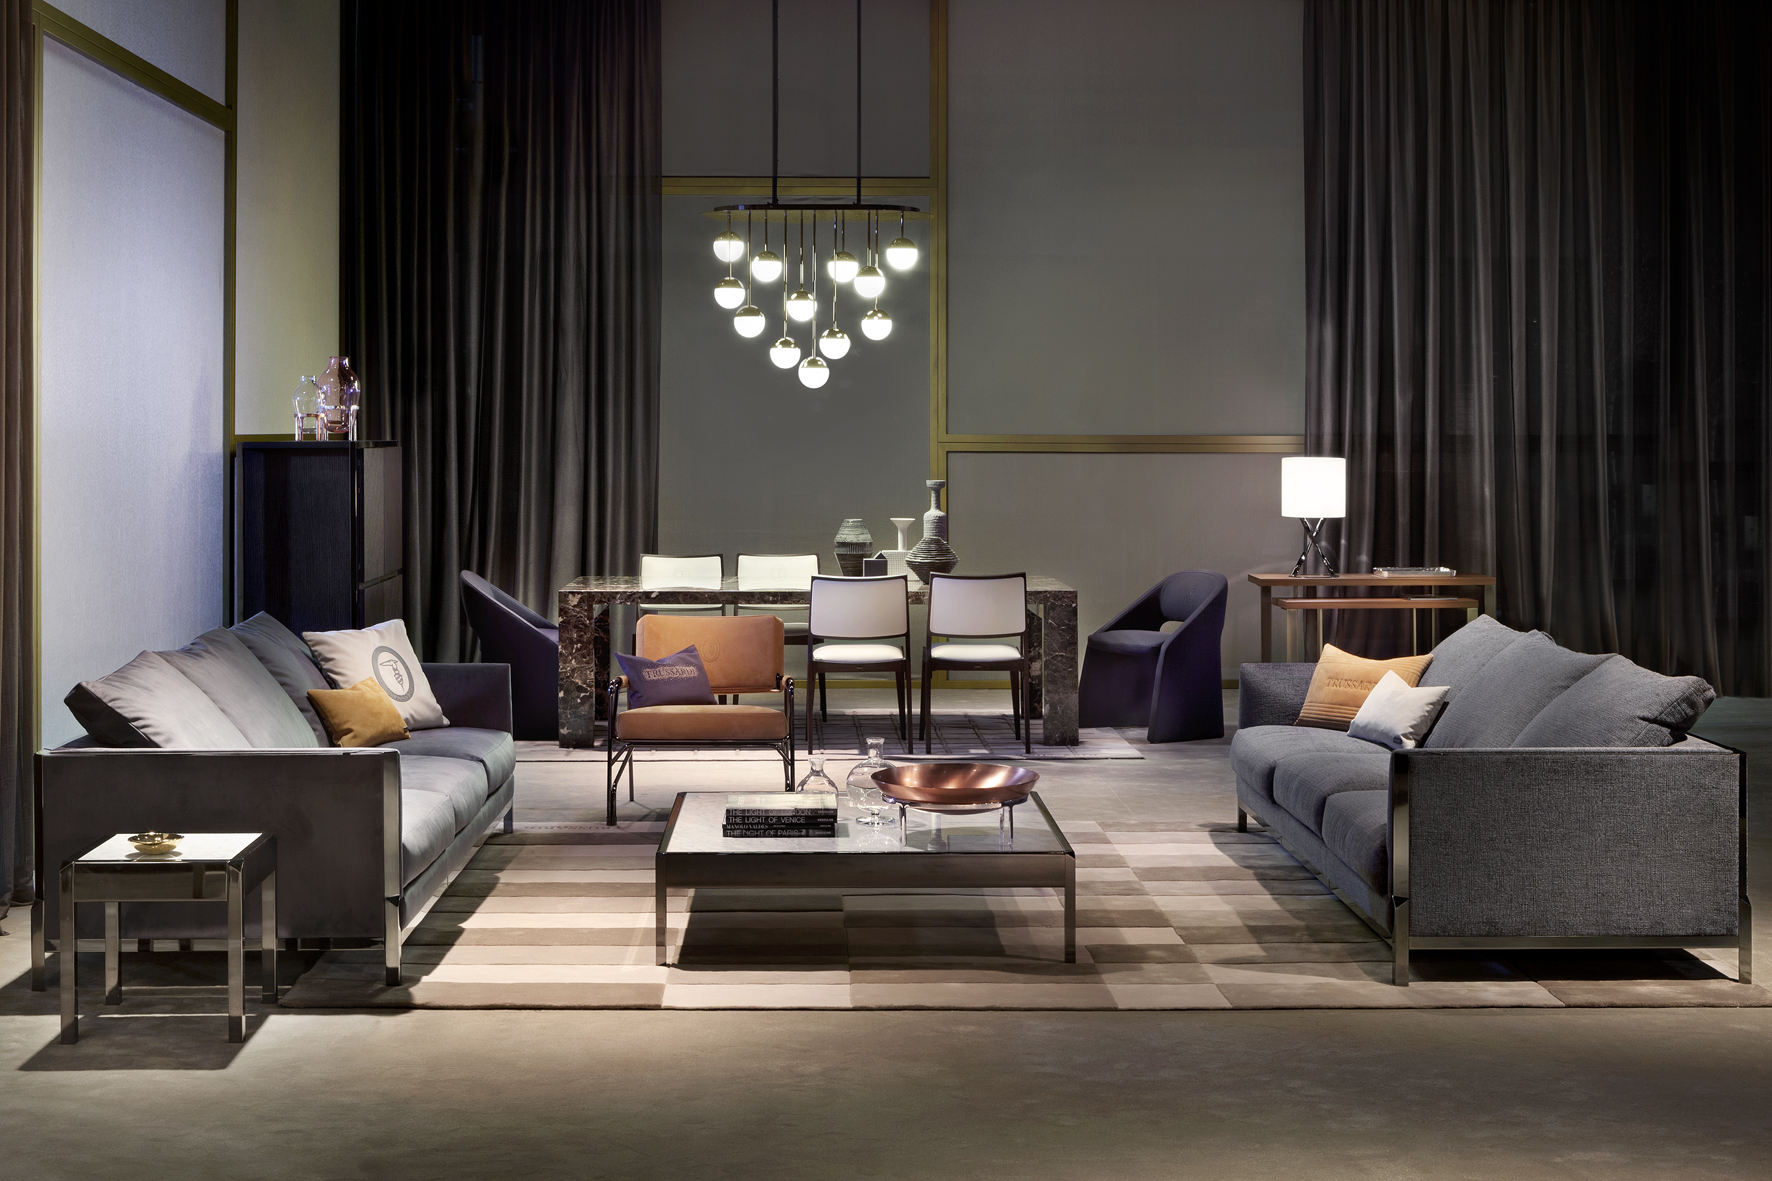 tr_band_sofas_coffee-side_tables_wint_armchair